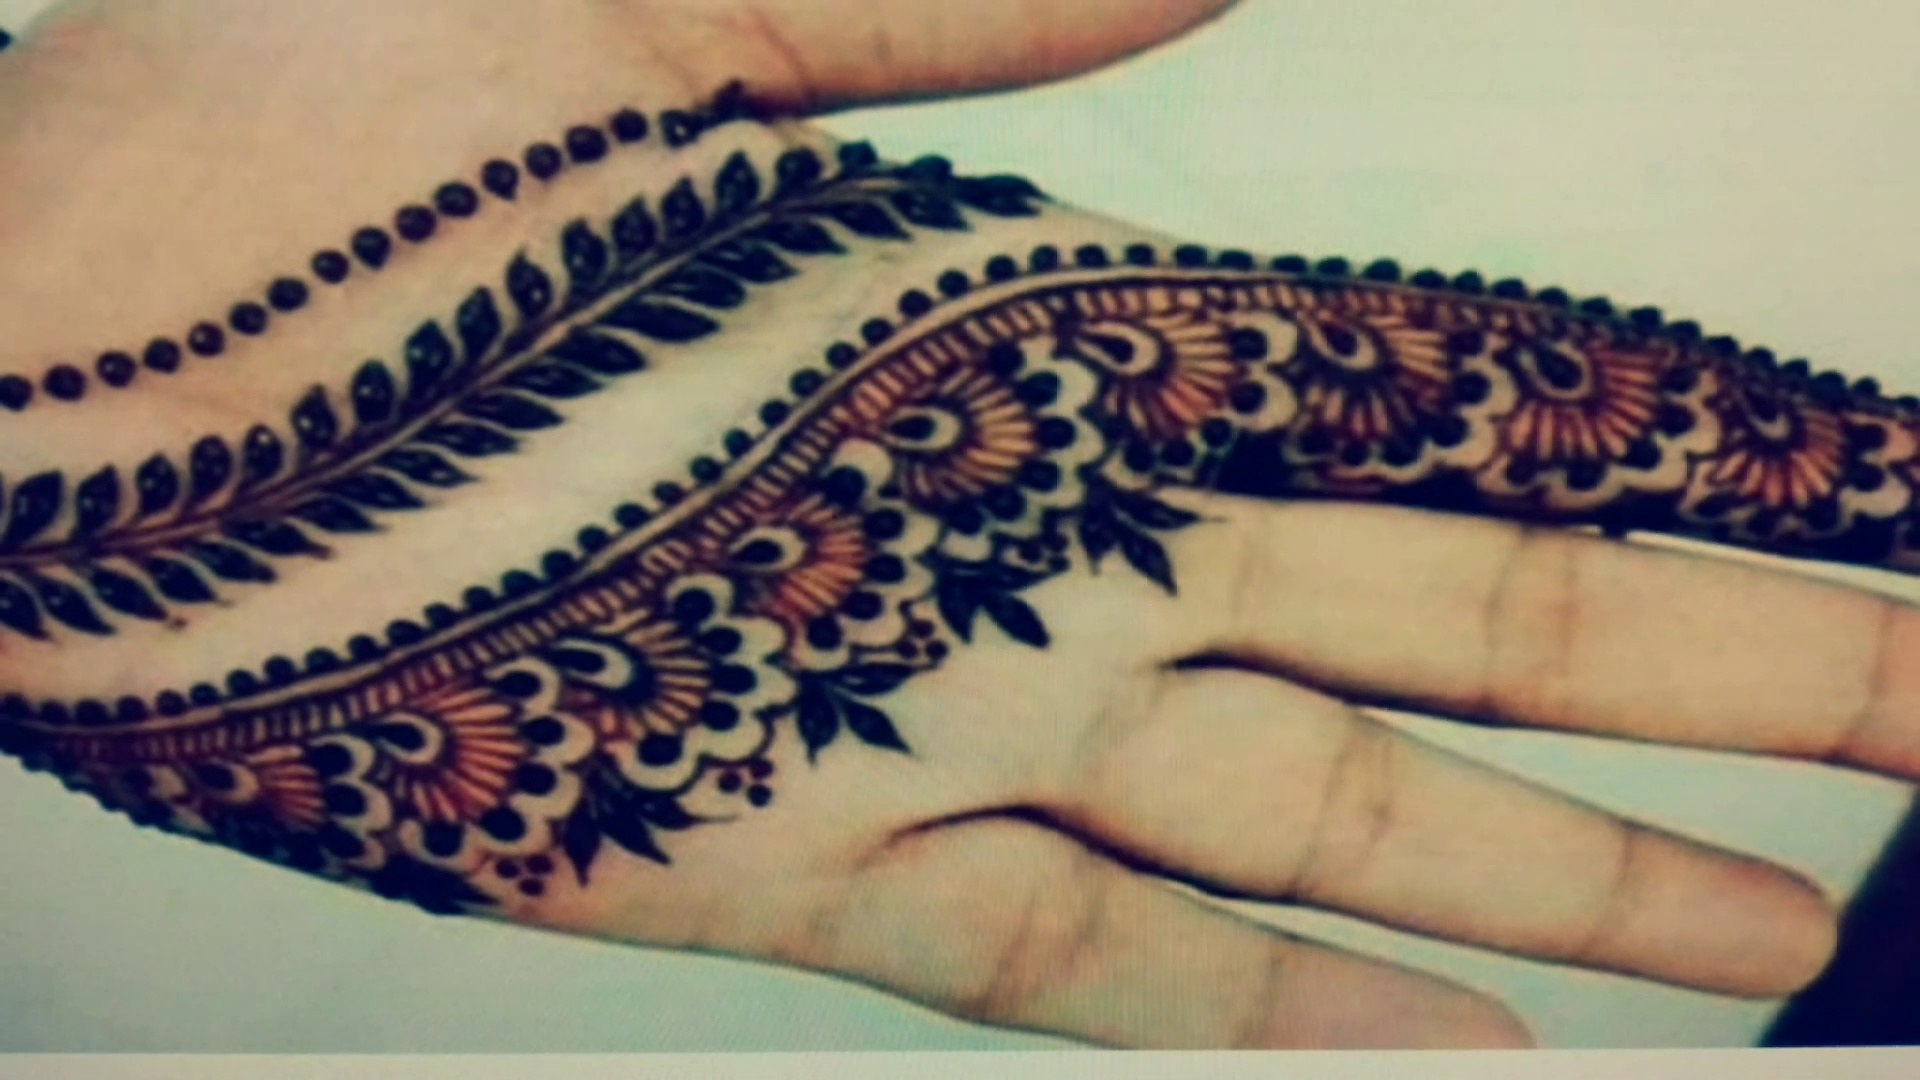 Beautiful Floral Mehndi Design For Hands Easy Mehndi Design For Hands By Mmp Video Dailymotion,Egyptian All Seeing Eye Tattoo Designs